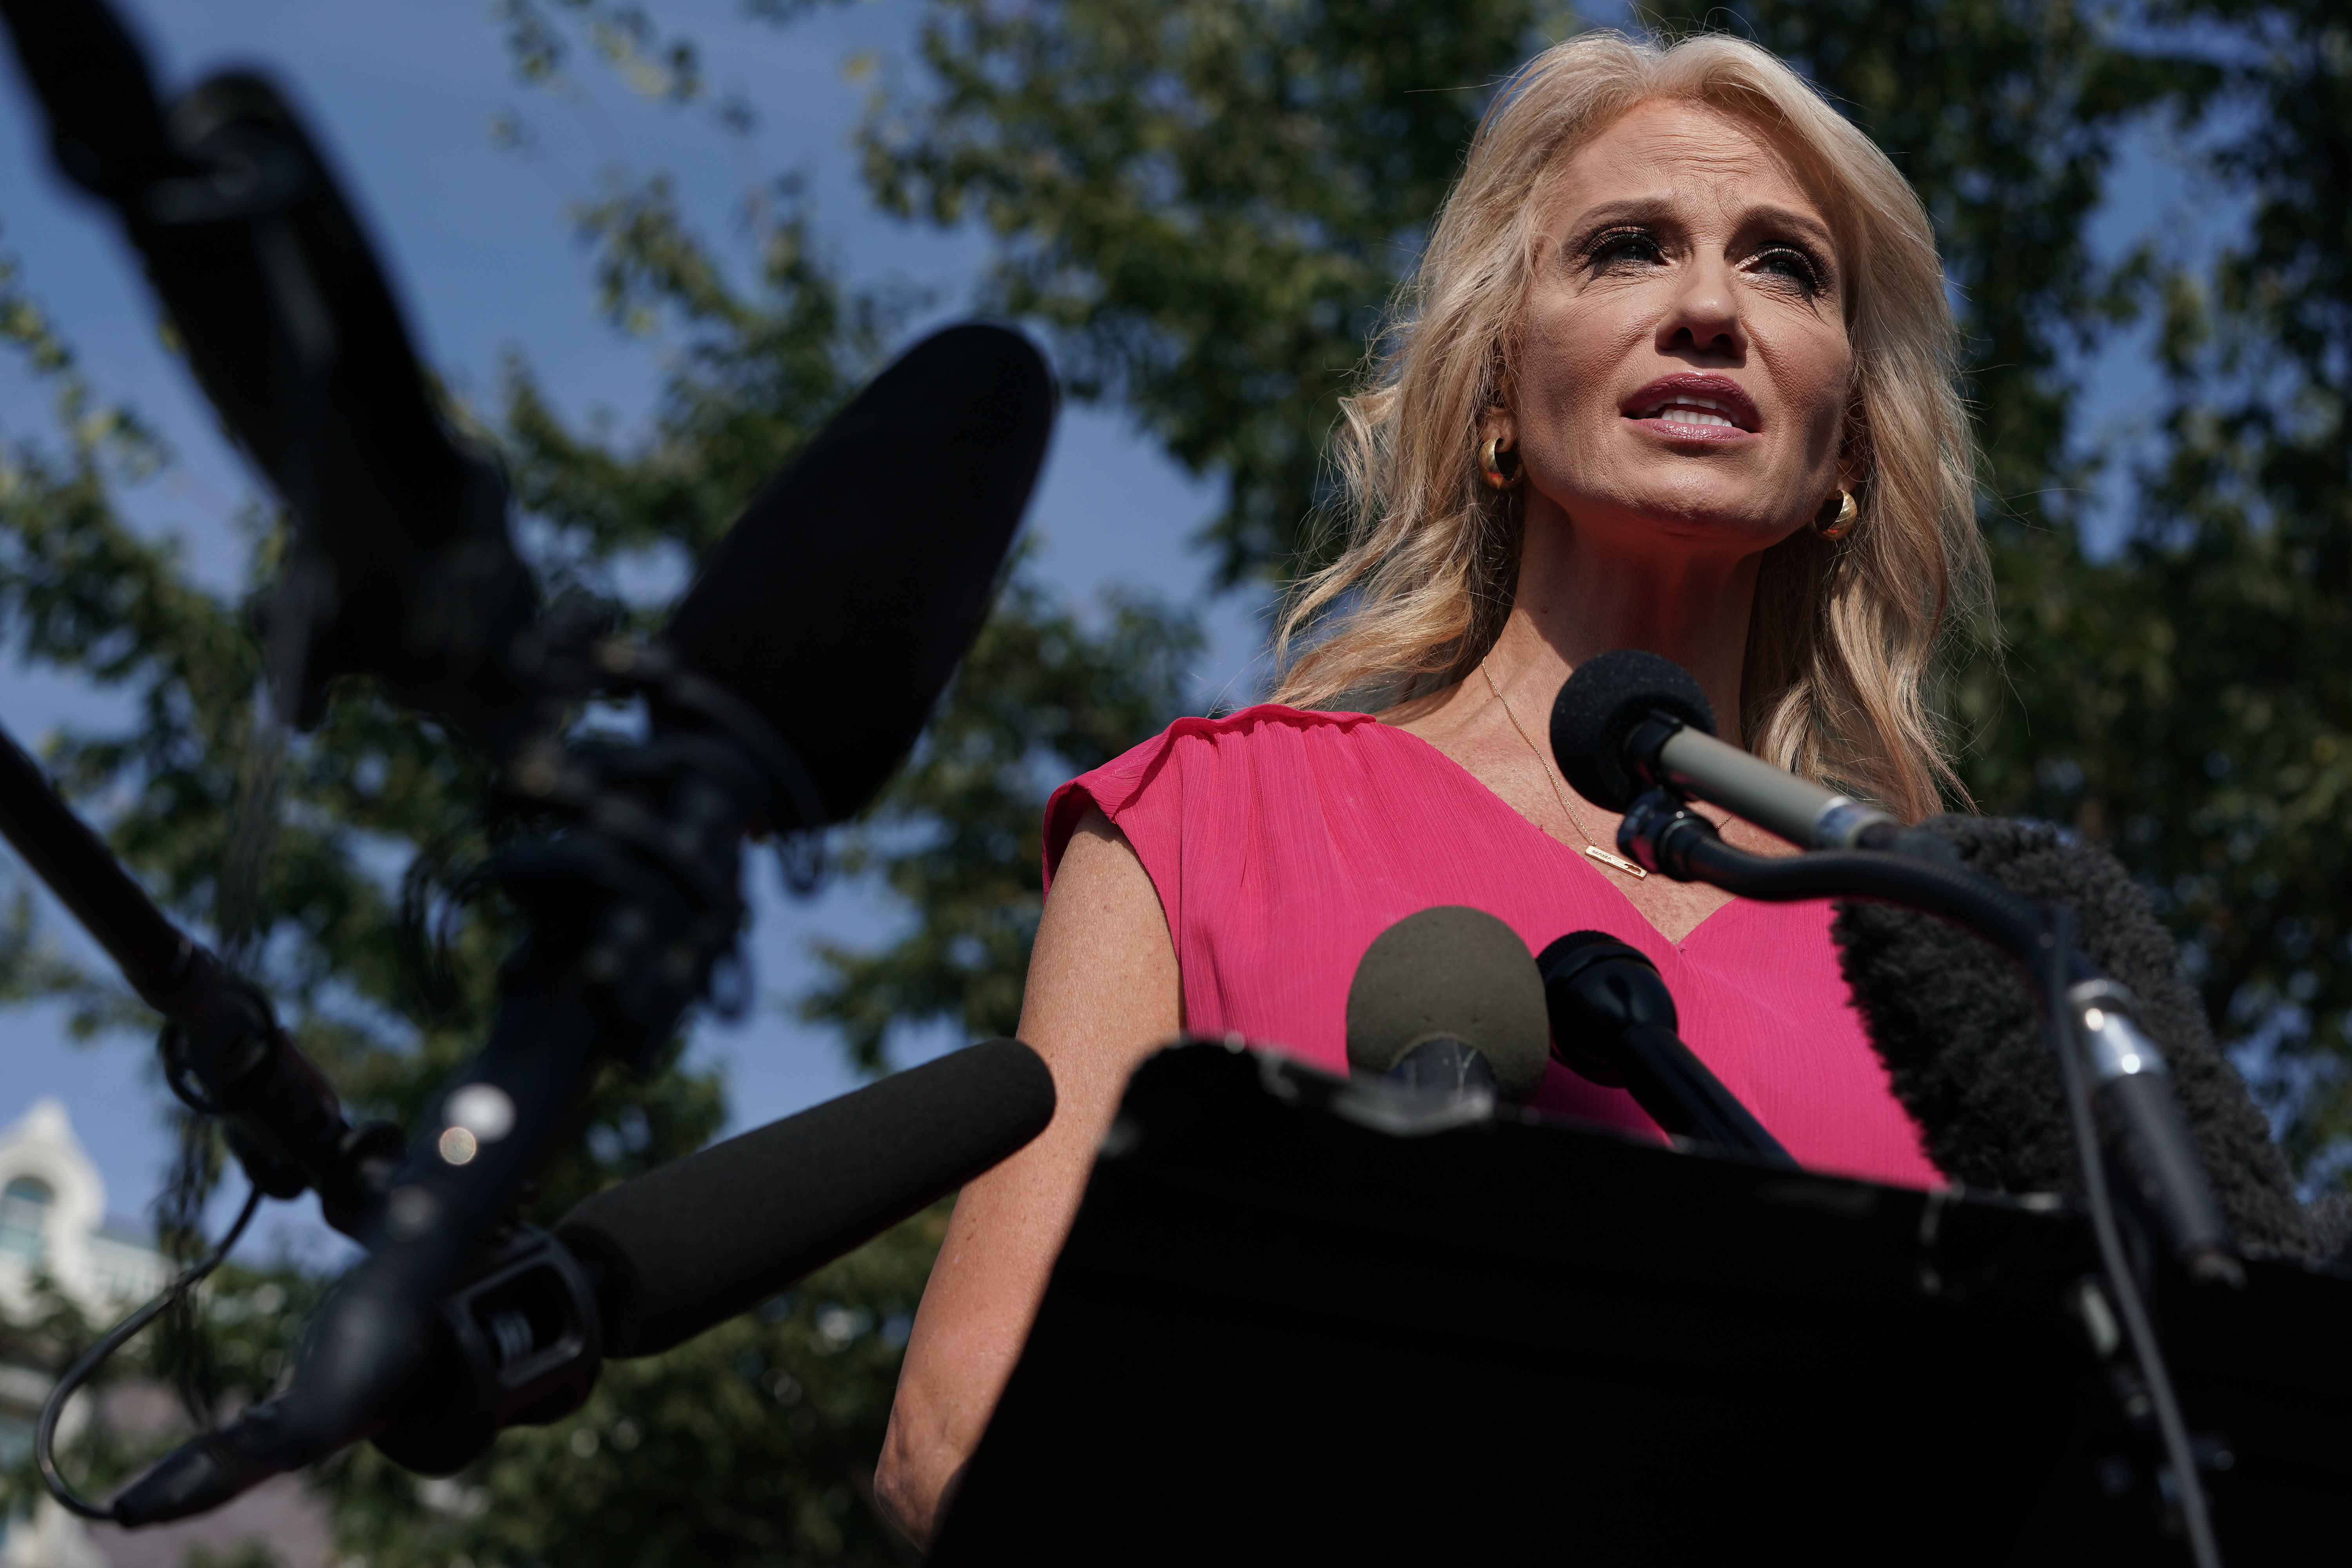 Kellyanne Conway speaks to members of the media outside the West Wing of the White House September 12, 2019 in Washington, D.C.